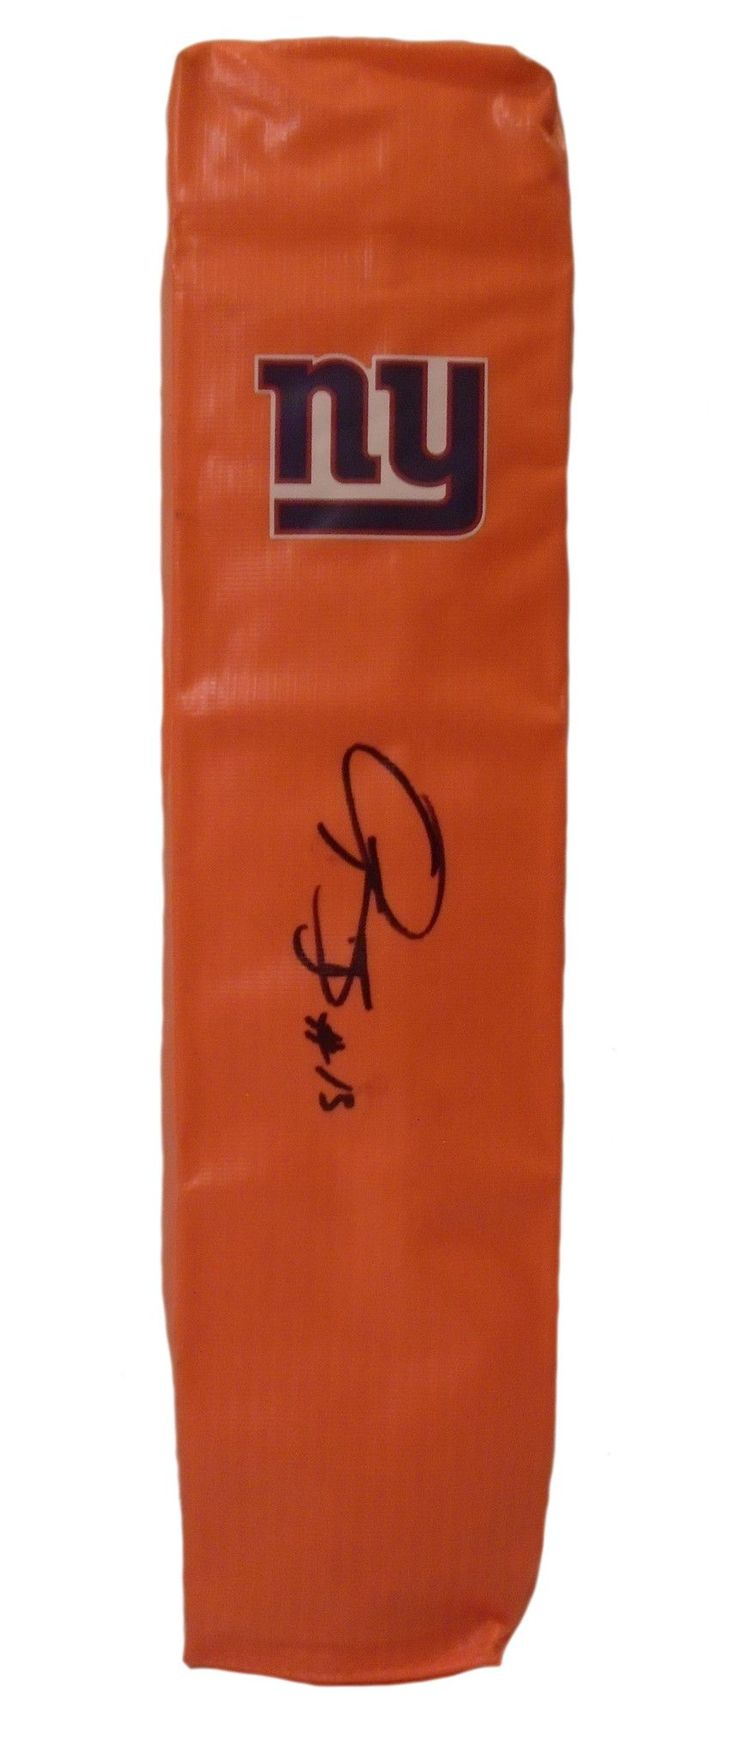 Odell Beckham Jr. signed NY Giants full size football touchdown end zone pylon w/ proof photo.  Proof photo of Odell signing will be included with your purchase along with a COA issued from Southwestconnection-Memorabilia, guaranteeing the item to pass authentication services from PSA/DNA or JSA. Free USPS shipping. www.AutographedwithProof.com is your one stop for autographed collectibles from New York sports teams. Check back with us often, as we are always obtaining new items.